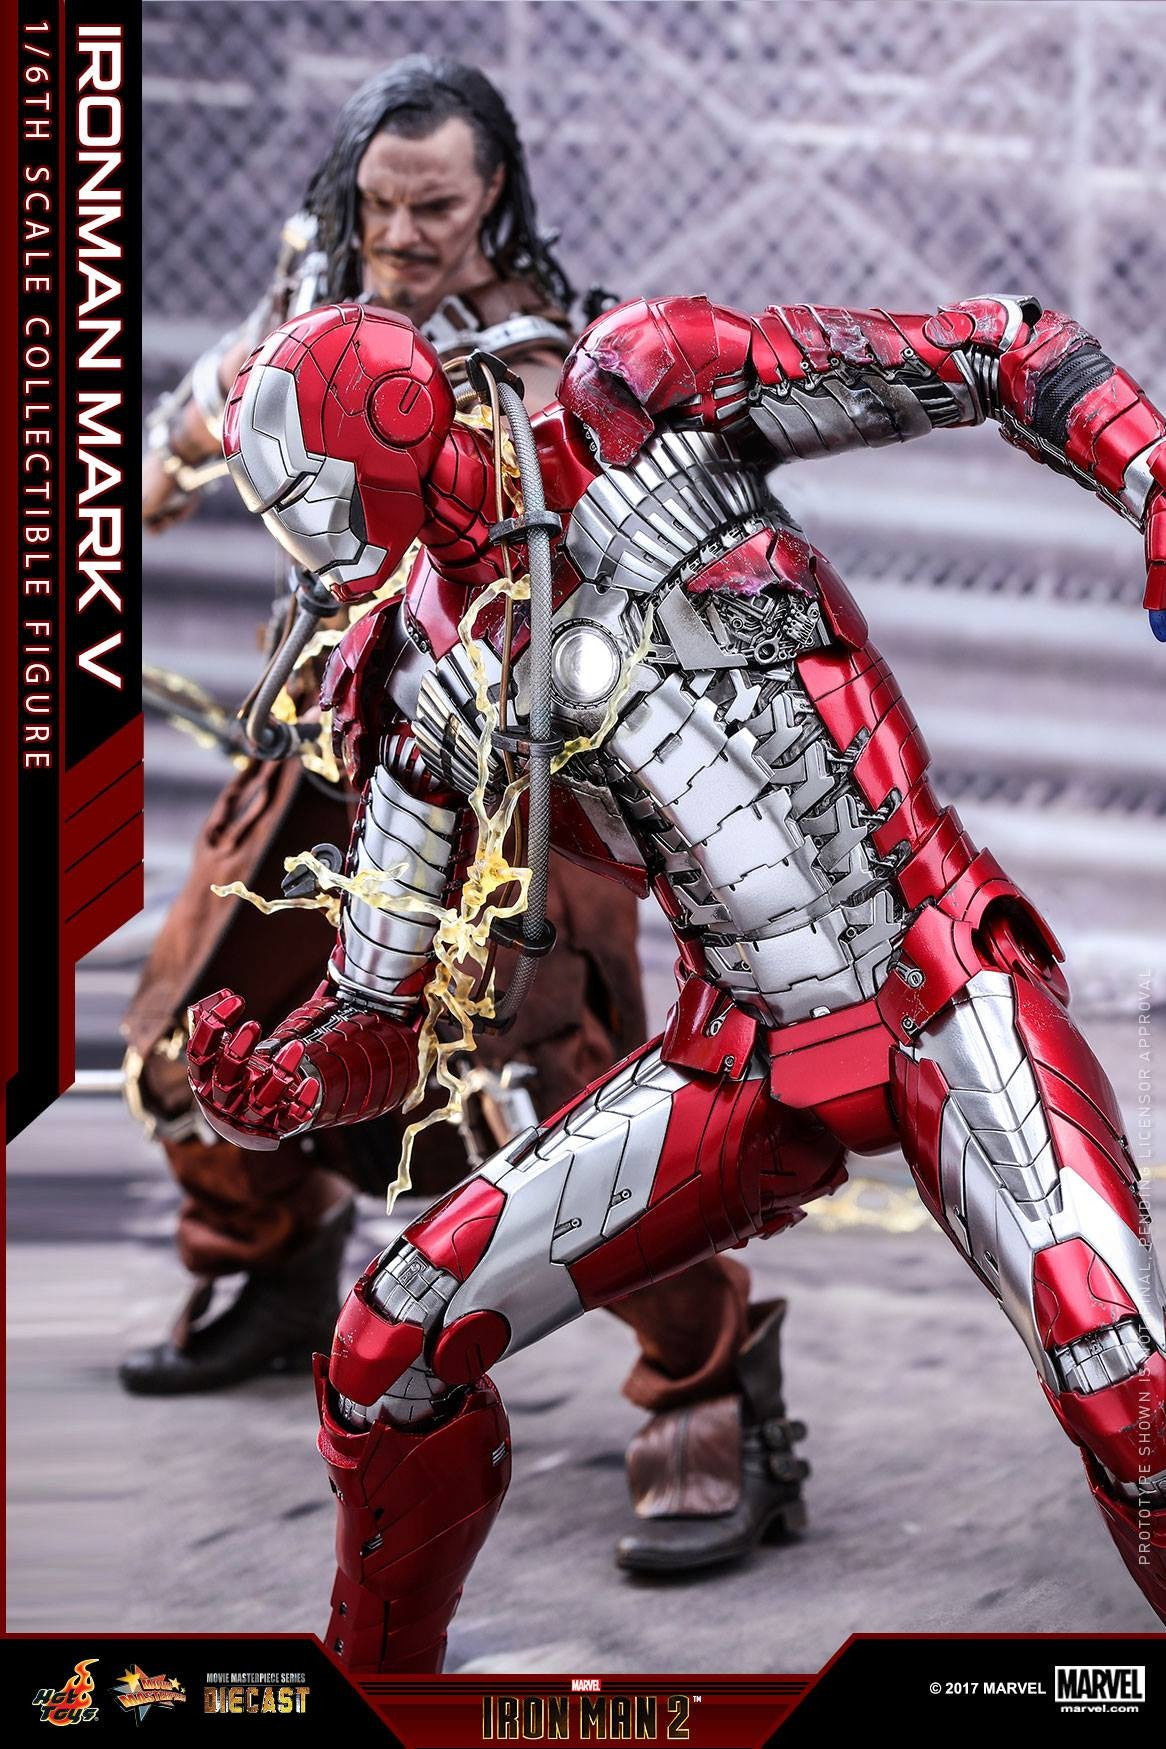 Hot Toys - MMS400D18 - Iron Man 2 - Mark V (DIECAST) - Marvelous Toys - 20